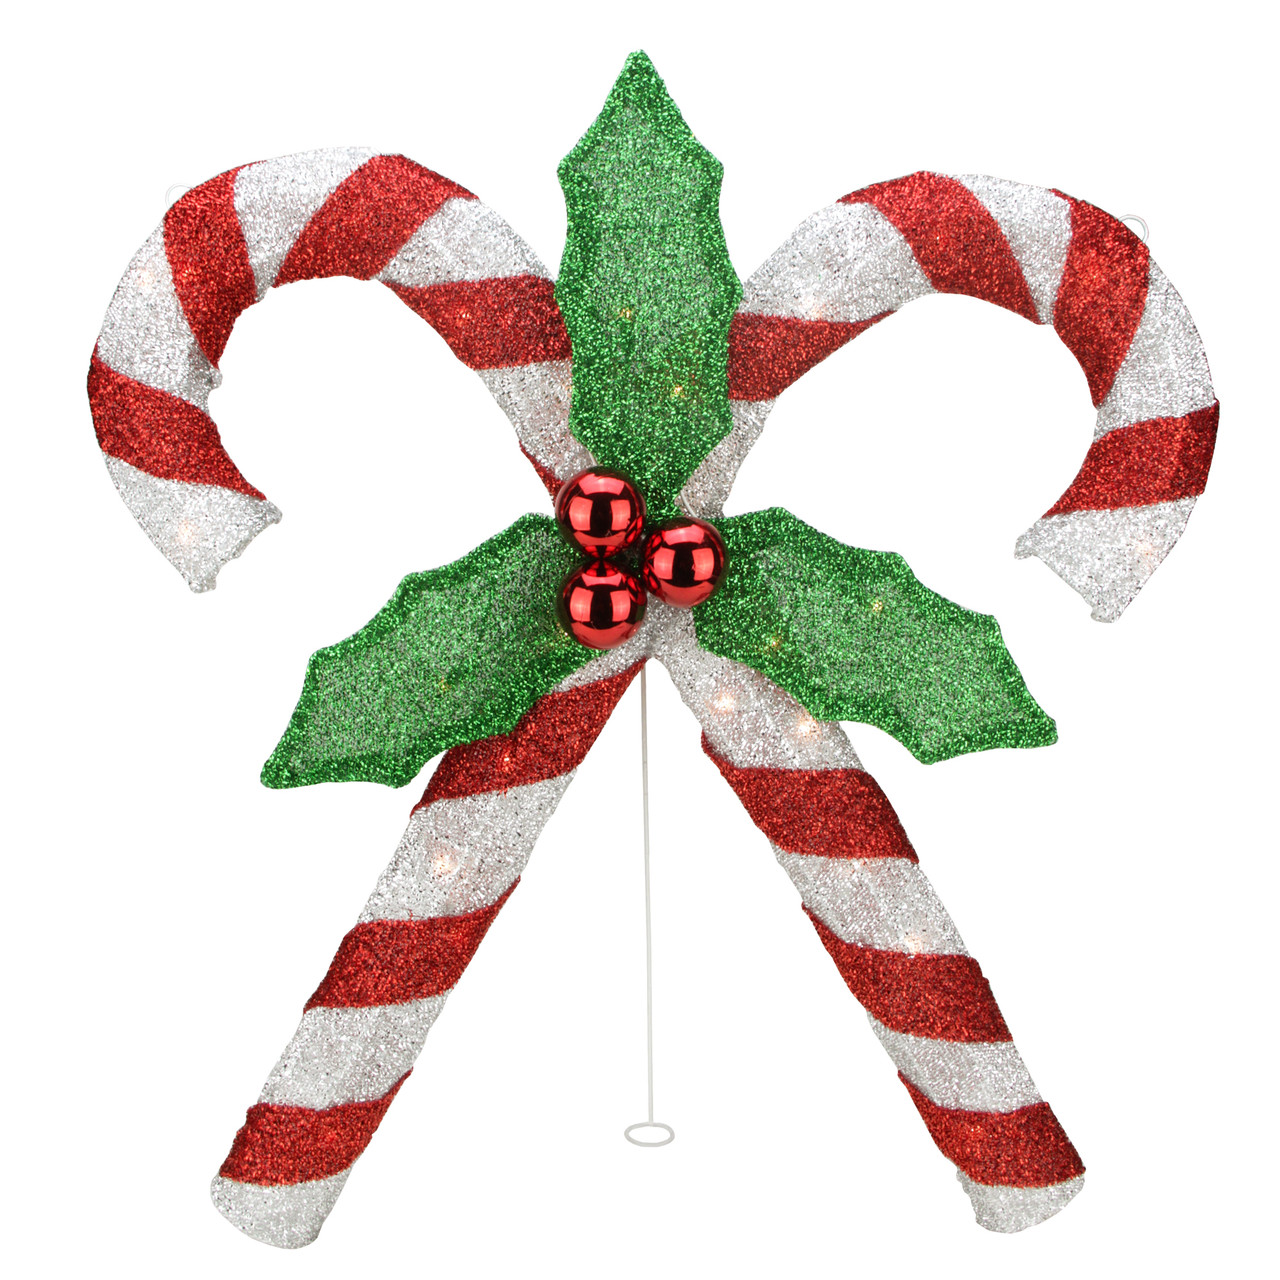 26 Red White Double Candy Cane Lighted Outdoor Christmas Decor Christmas Central